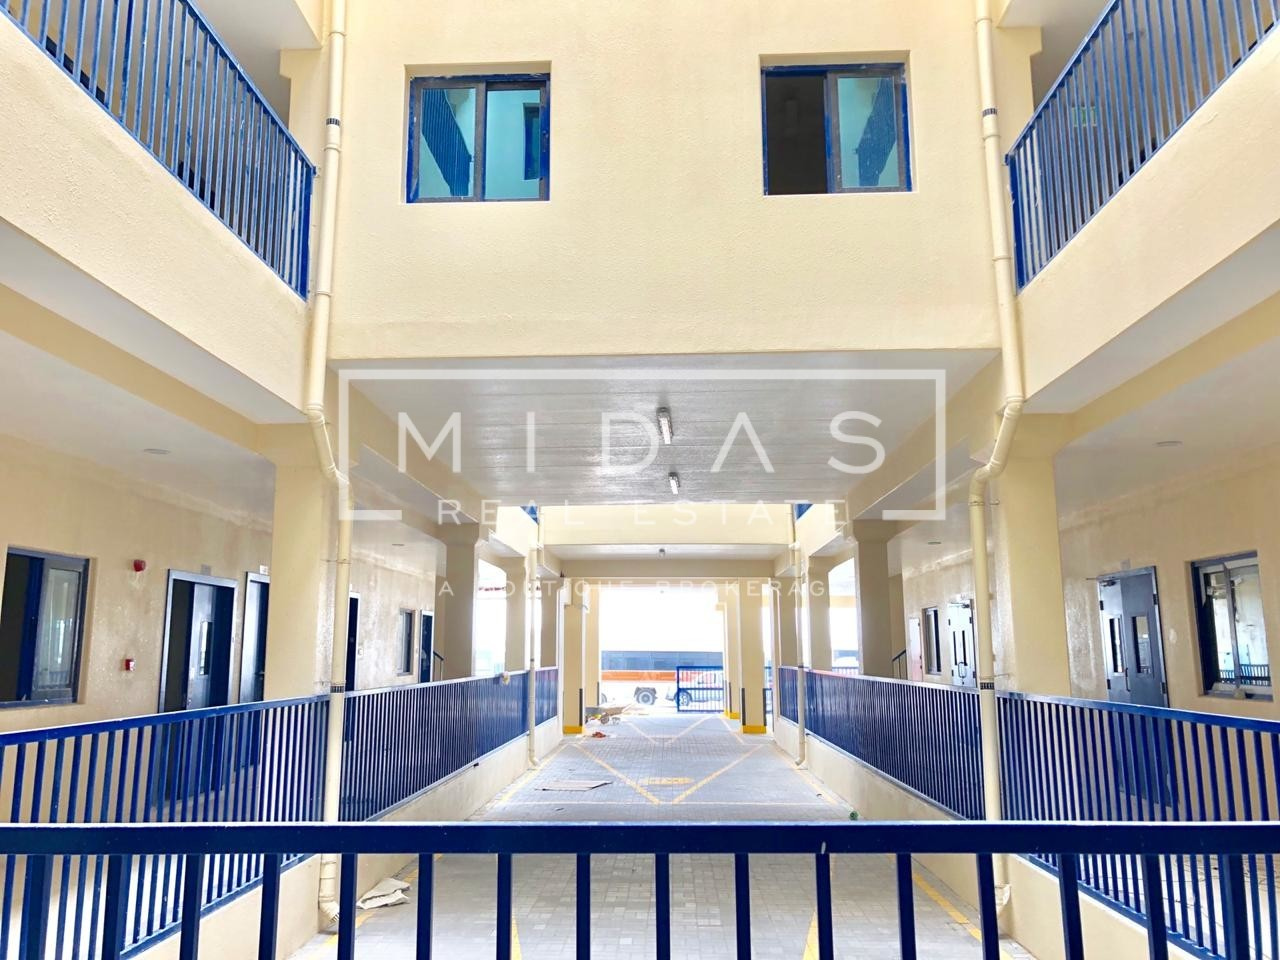 Best Priced | 284 Rooms Available | AED 1700 Per Room